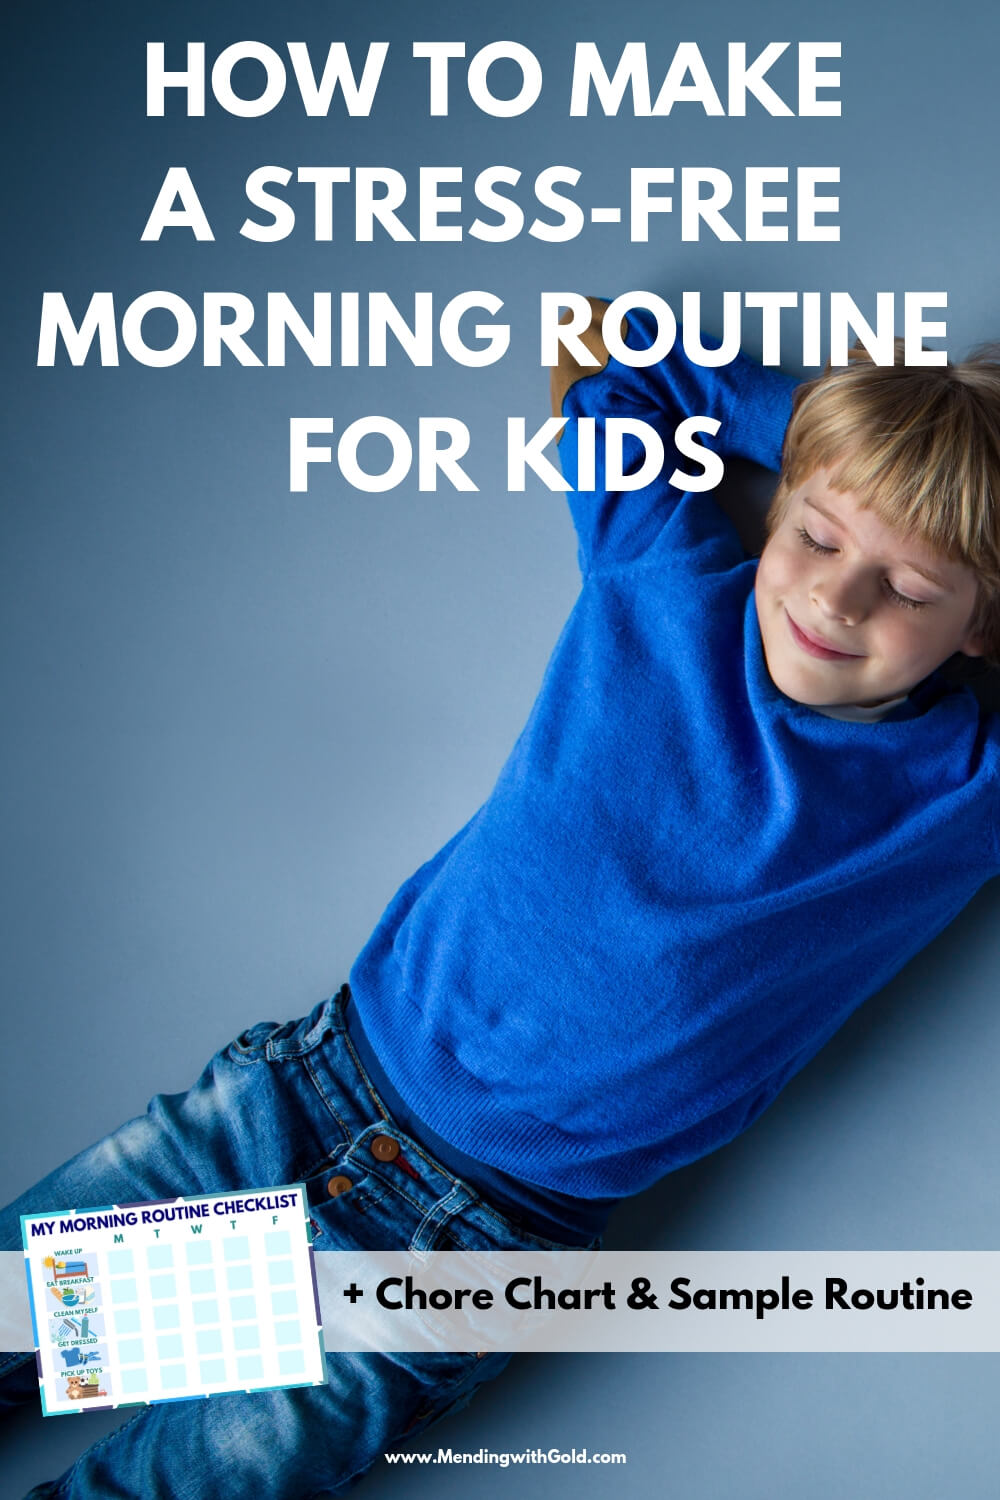 Morning routines make mom life easy! Simple daily schedules r a must for moms who work at home esp. a morning routine for moms with babies, toddlers or pre-schoolers! Add in the school morning routine for kindergarten children or kids you homeschool=blast! Using daily routine charts for kids in the house like this free printable kids chore chart w/ morning checklist for kids is one of the best ideas for healthy stress-free parenting. #kids #parenting #timemanagementtips #momlife #productivity